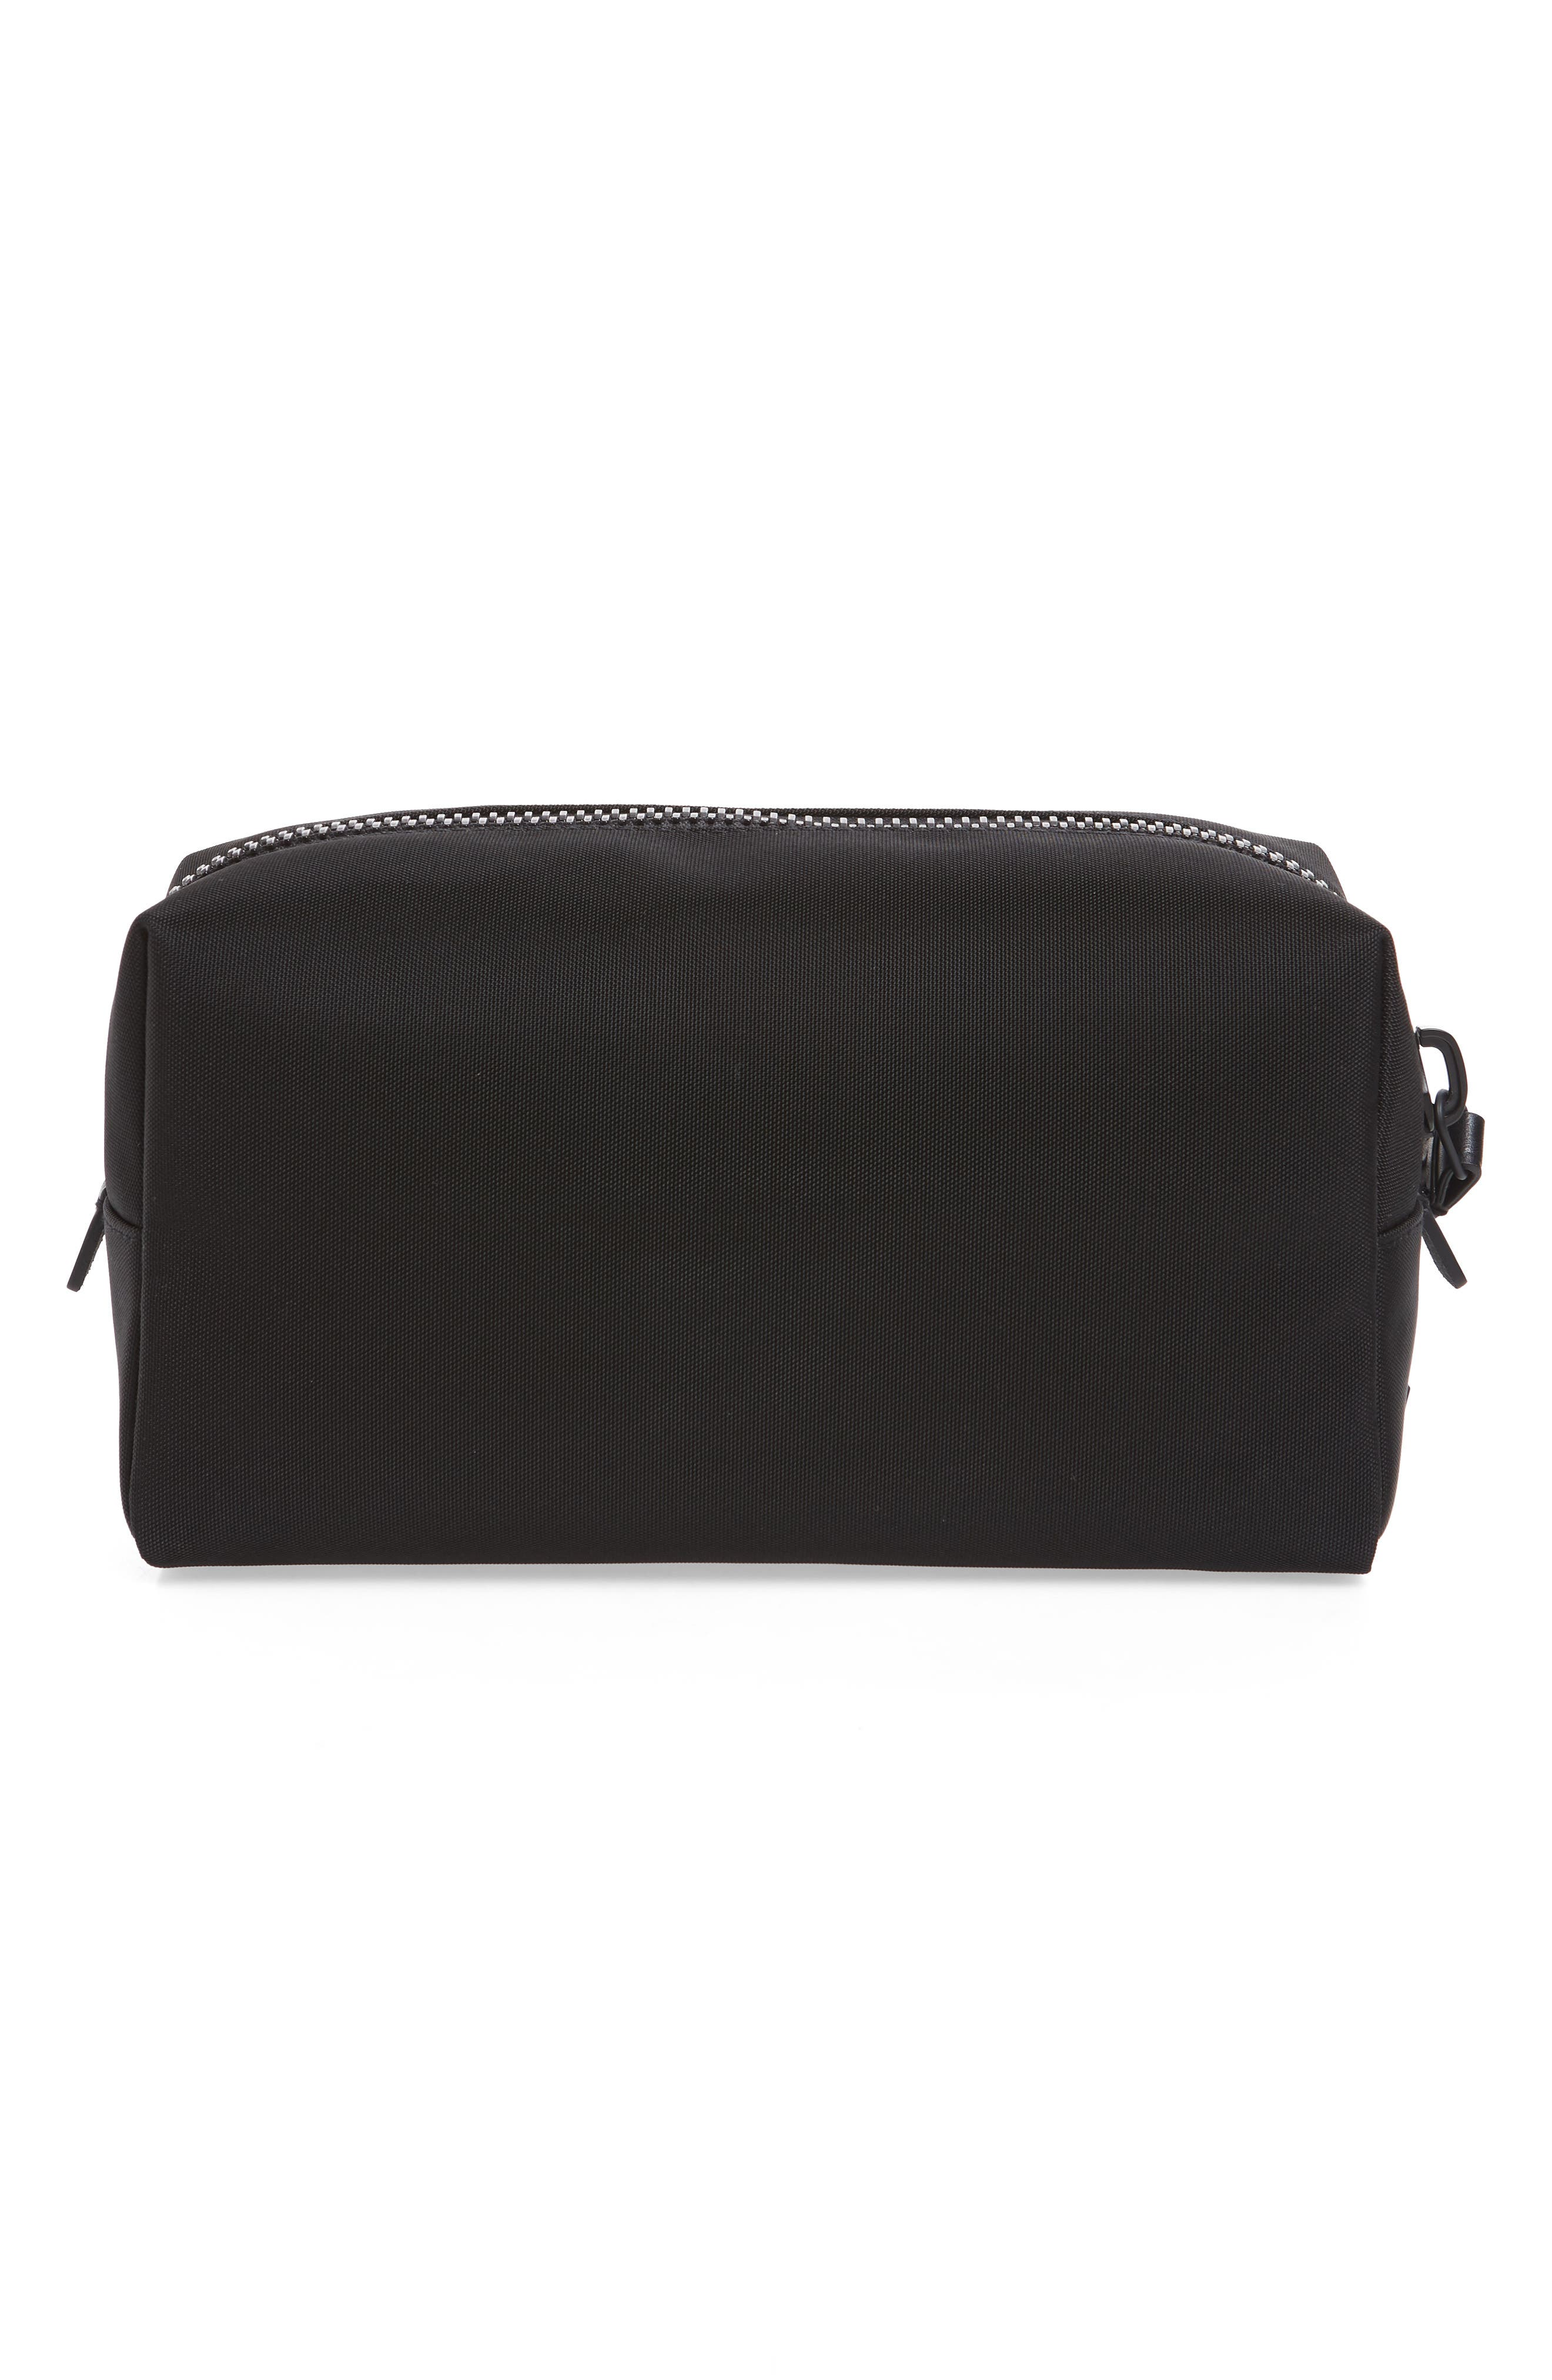 Nylon Dopp Kit,                             Alternate thumbnail 3, color,                             BLACK NYLON/ BLACK LEATHER